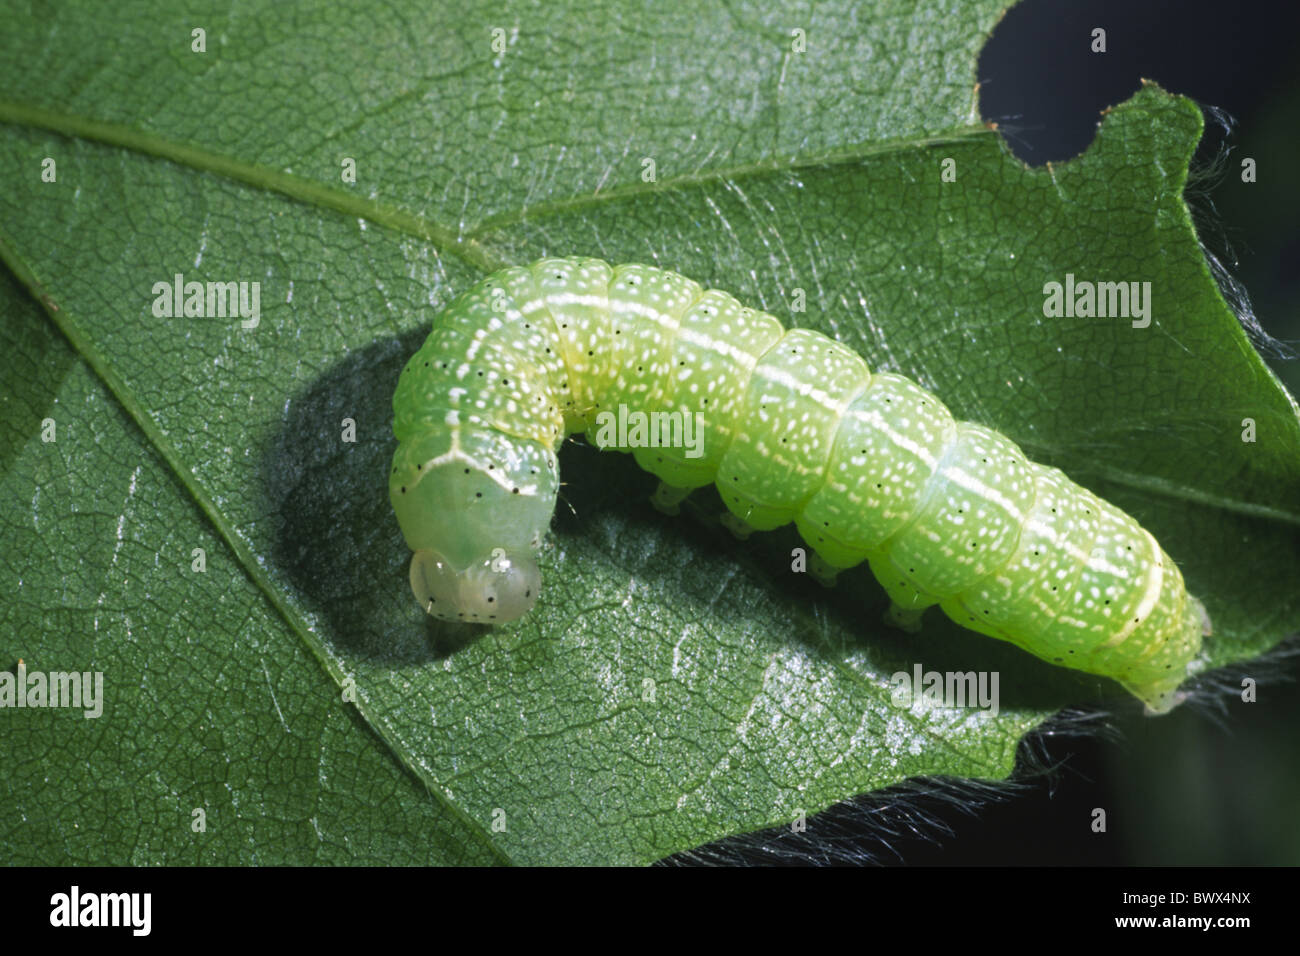 Orthosia Cerasi Common Quaker Larva Larvae Caterpillar Insect Bug Stock Photo  Royalty Free